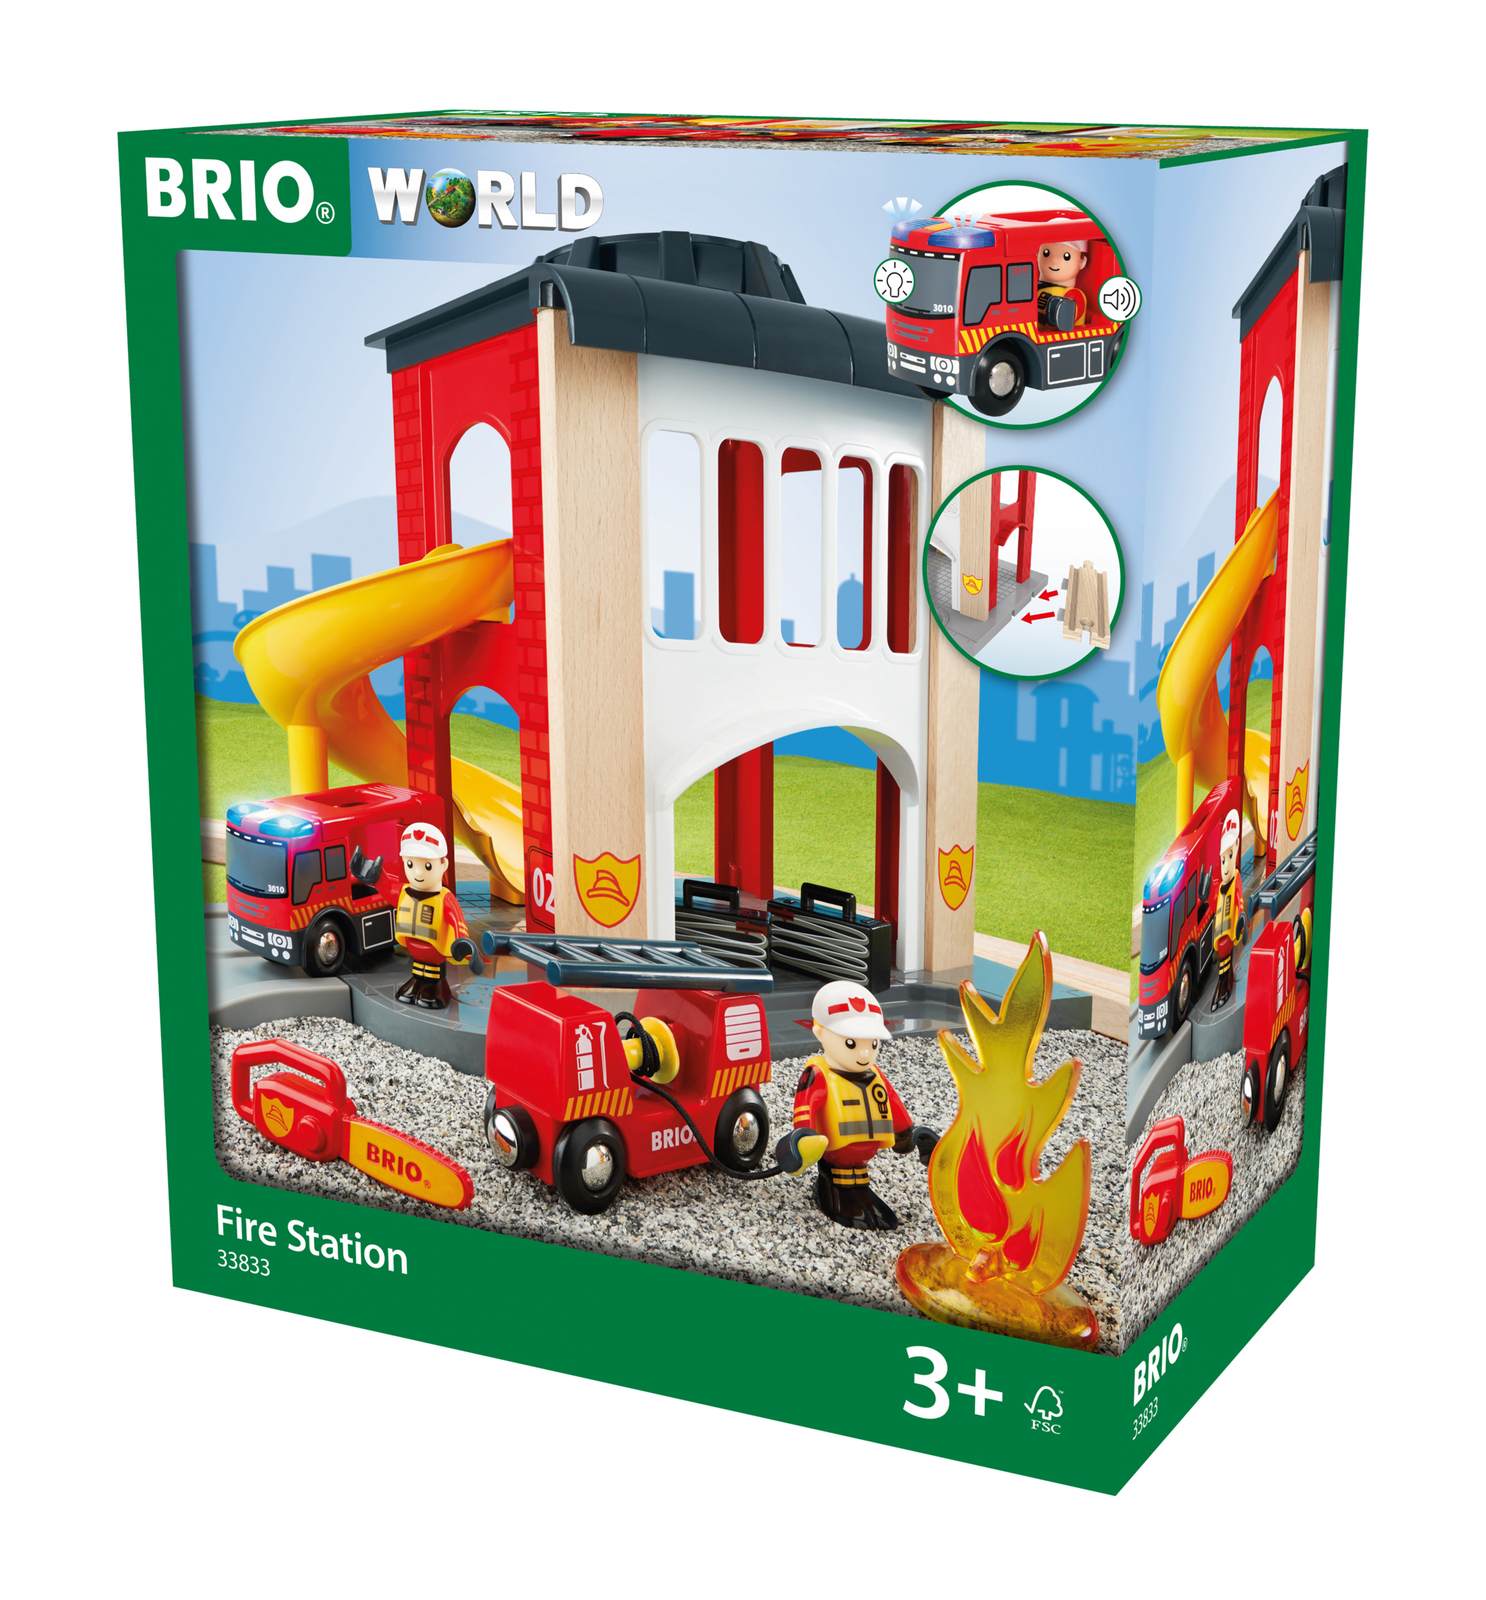 Brio: World - Fire Station image